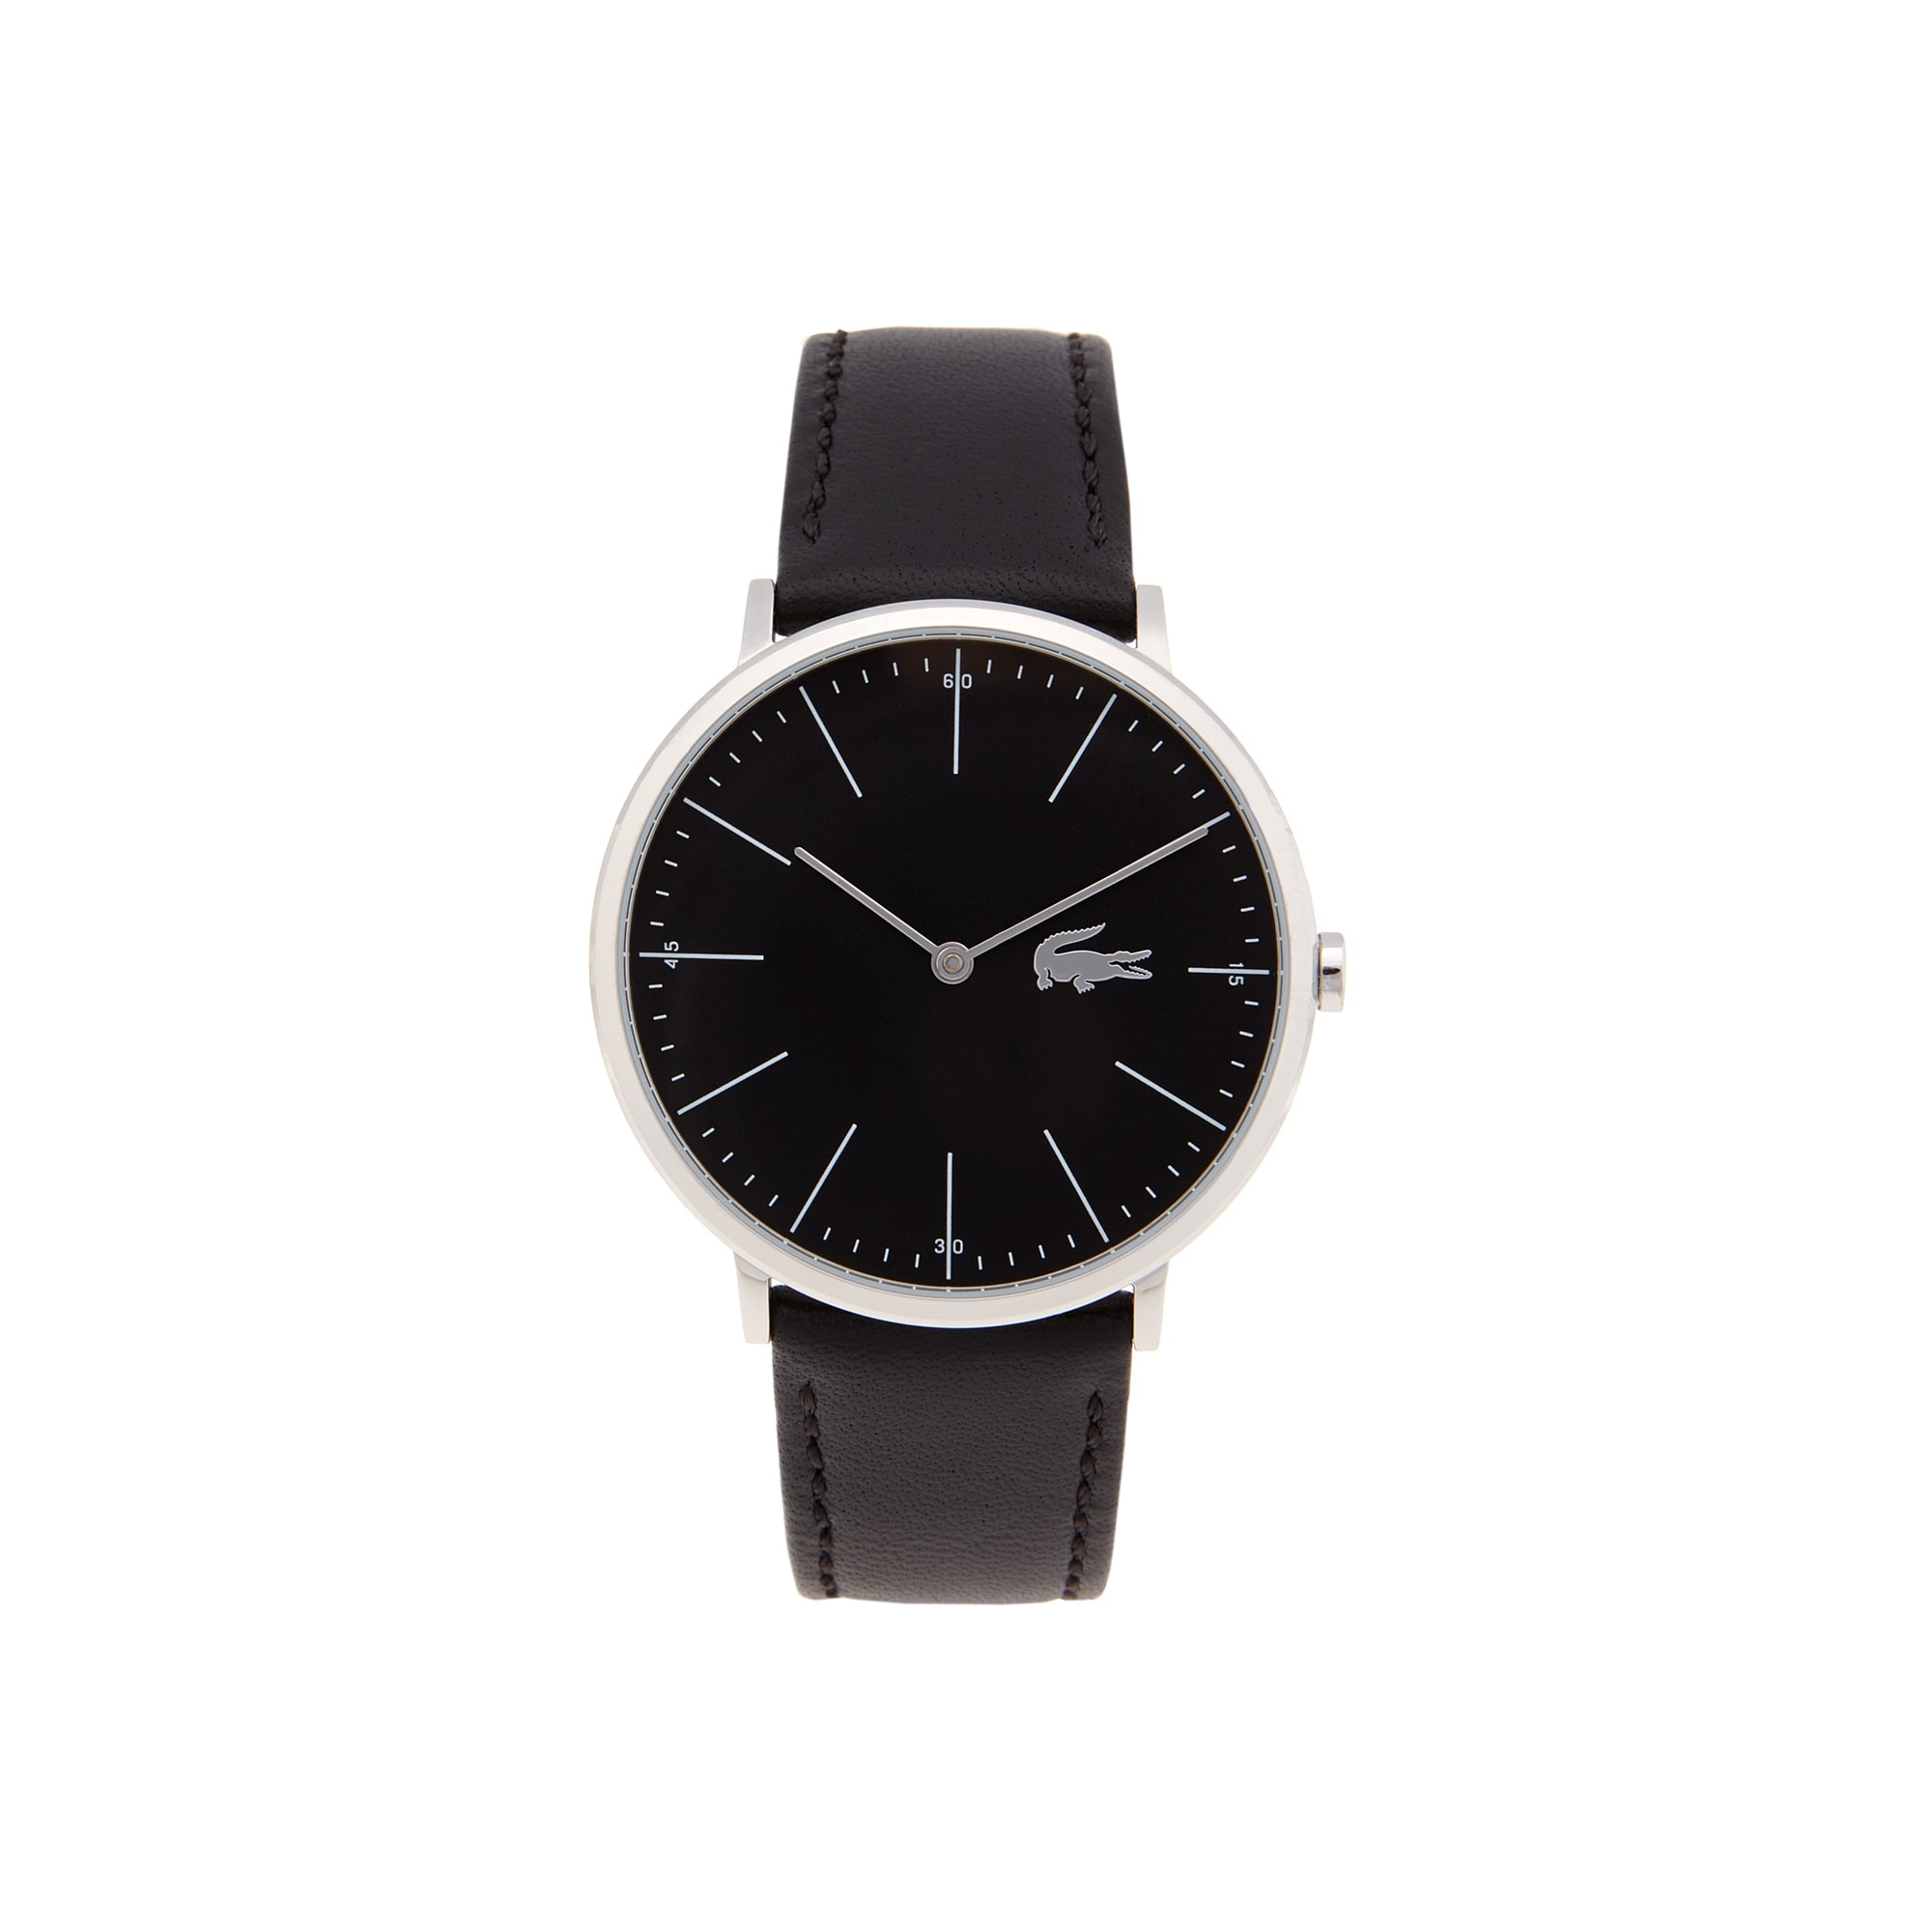 Men's Moon Ultra Slim Watch with Black Leather Strap